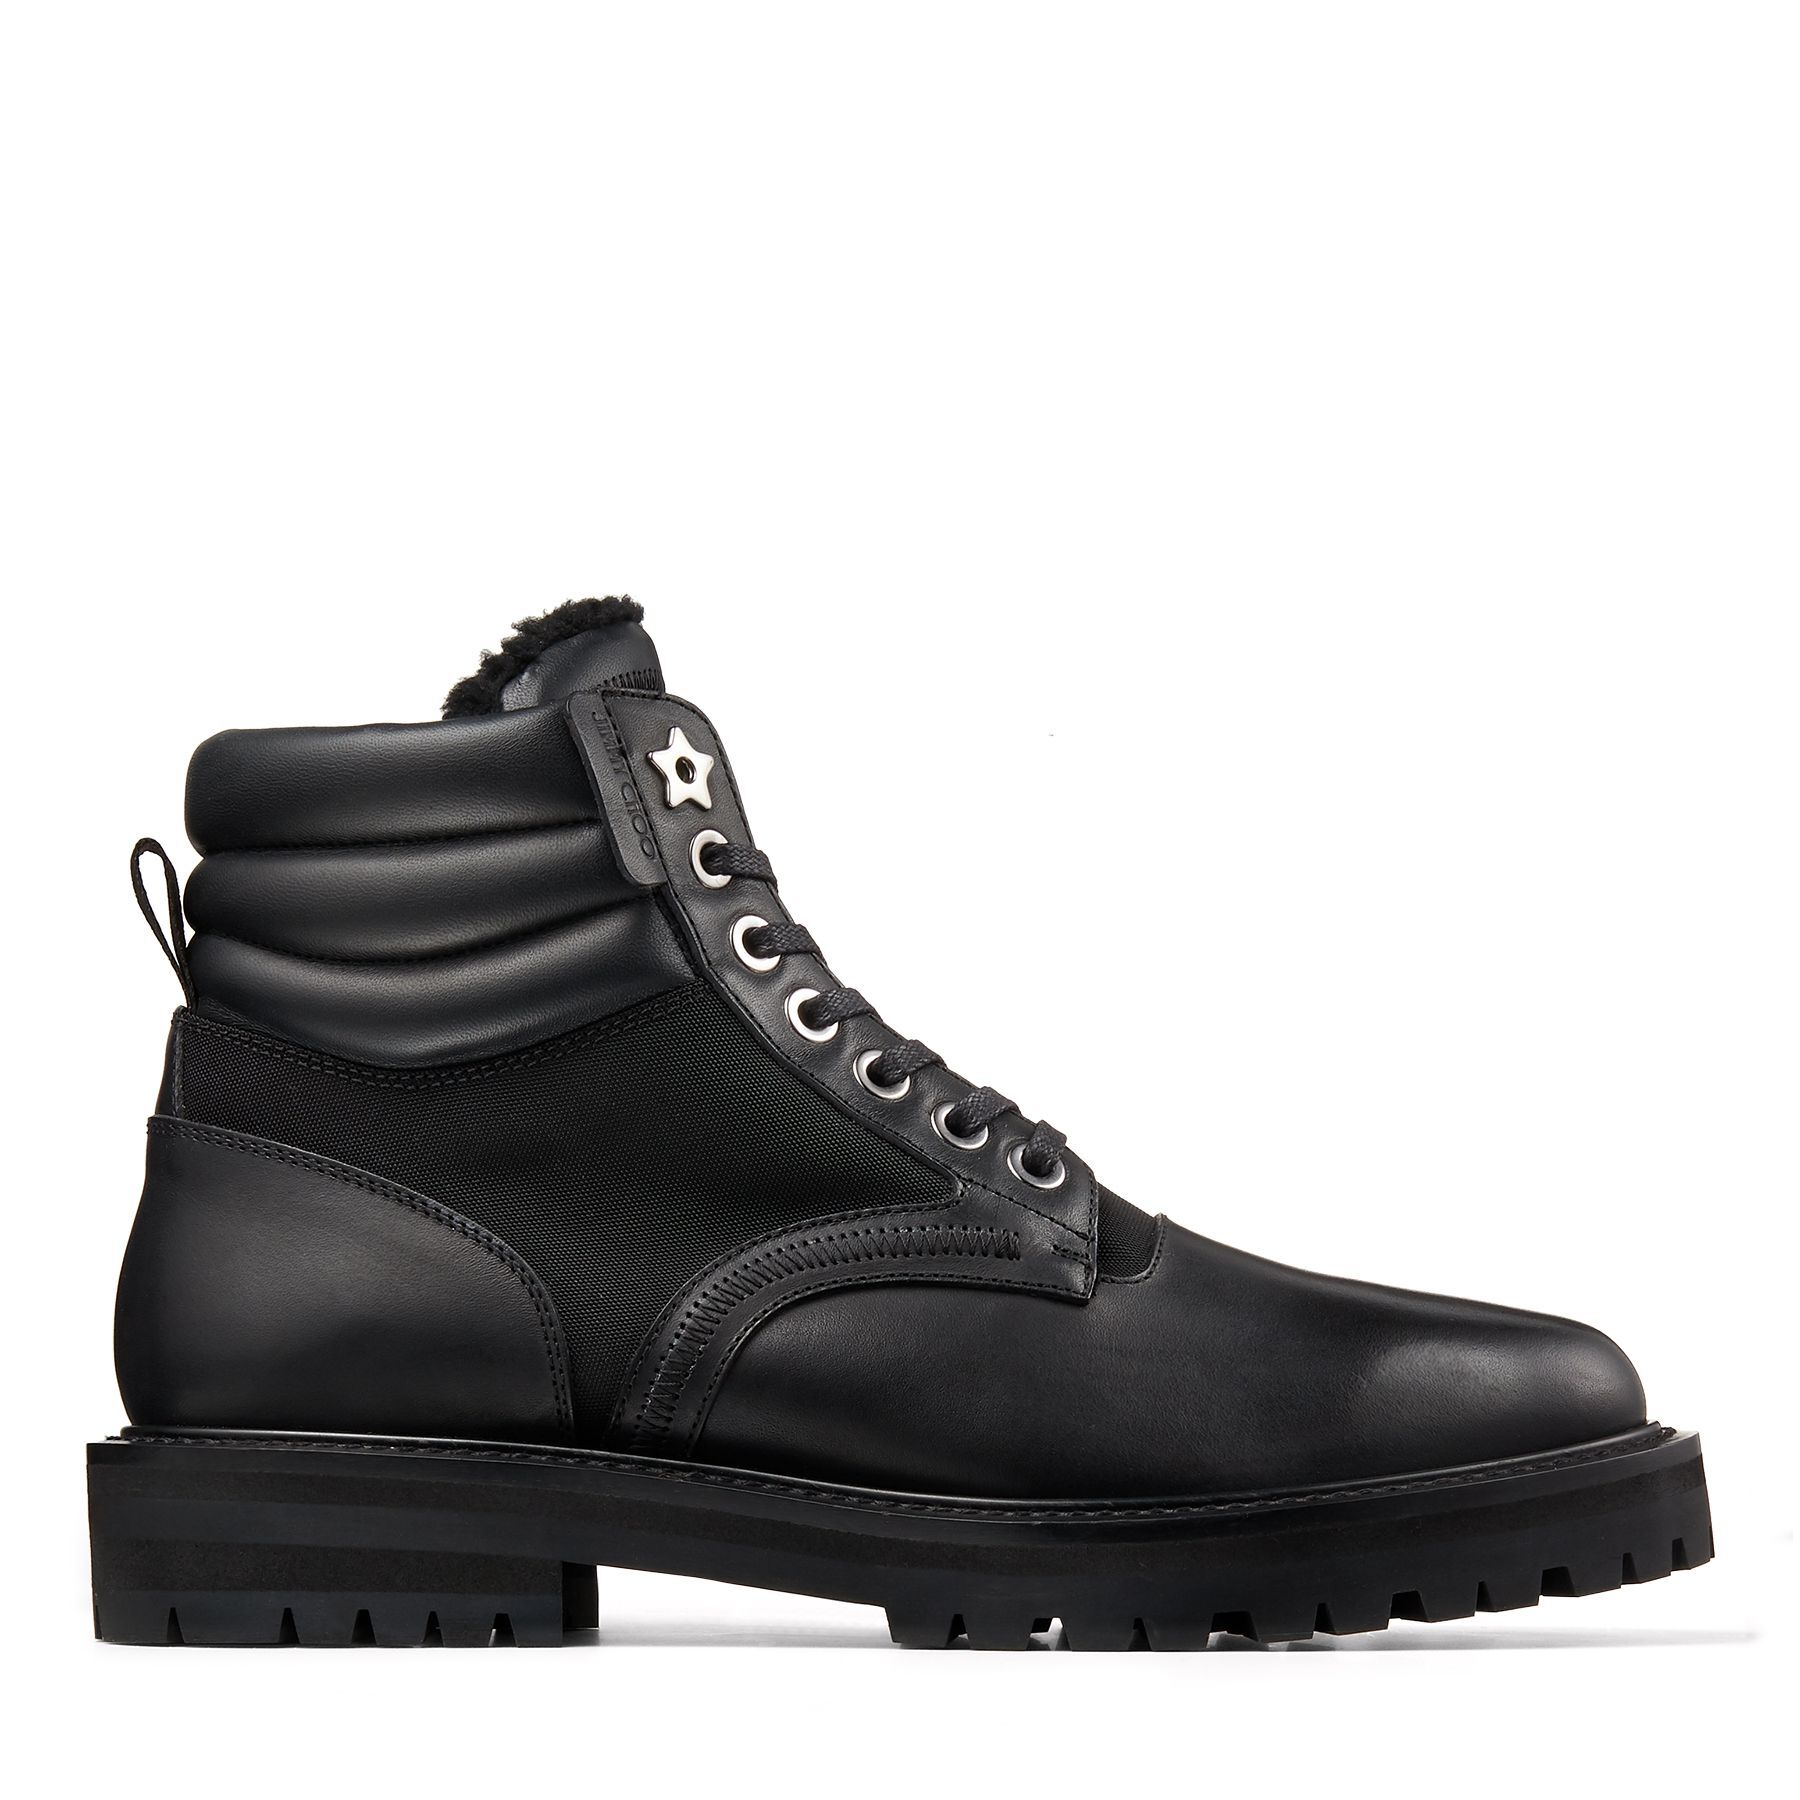 ODIN - Black Shiny Vacchetta Boots with Canvas Panels and Shearling Collar